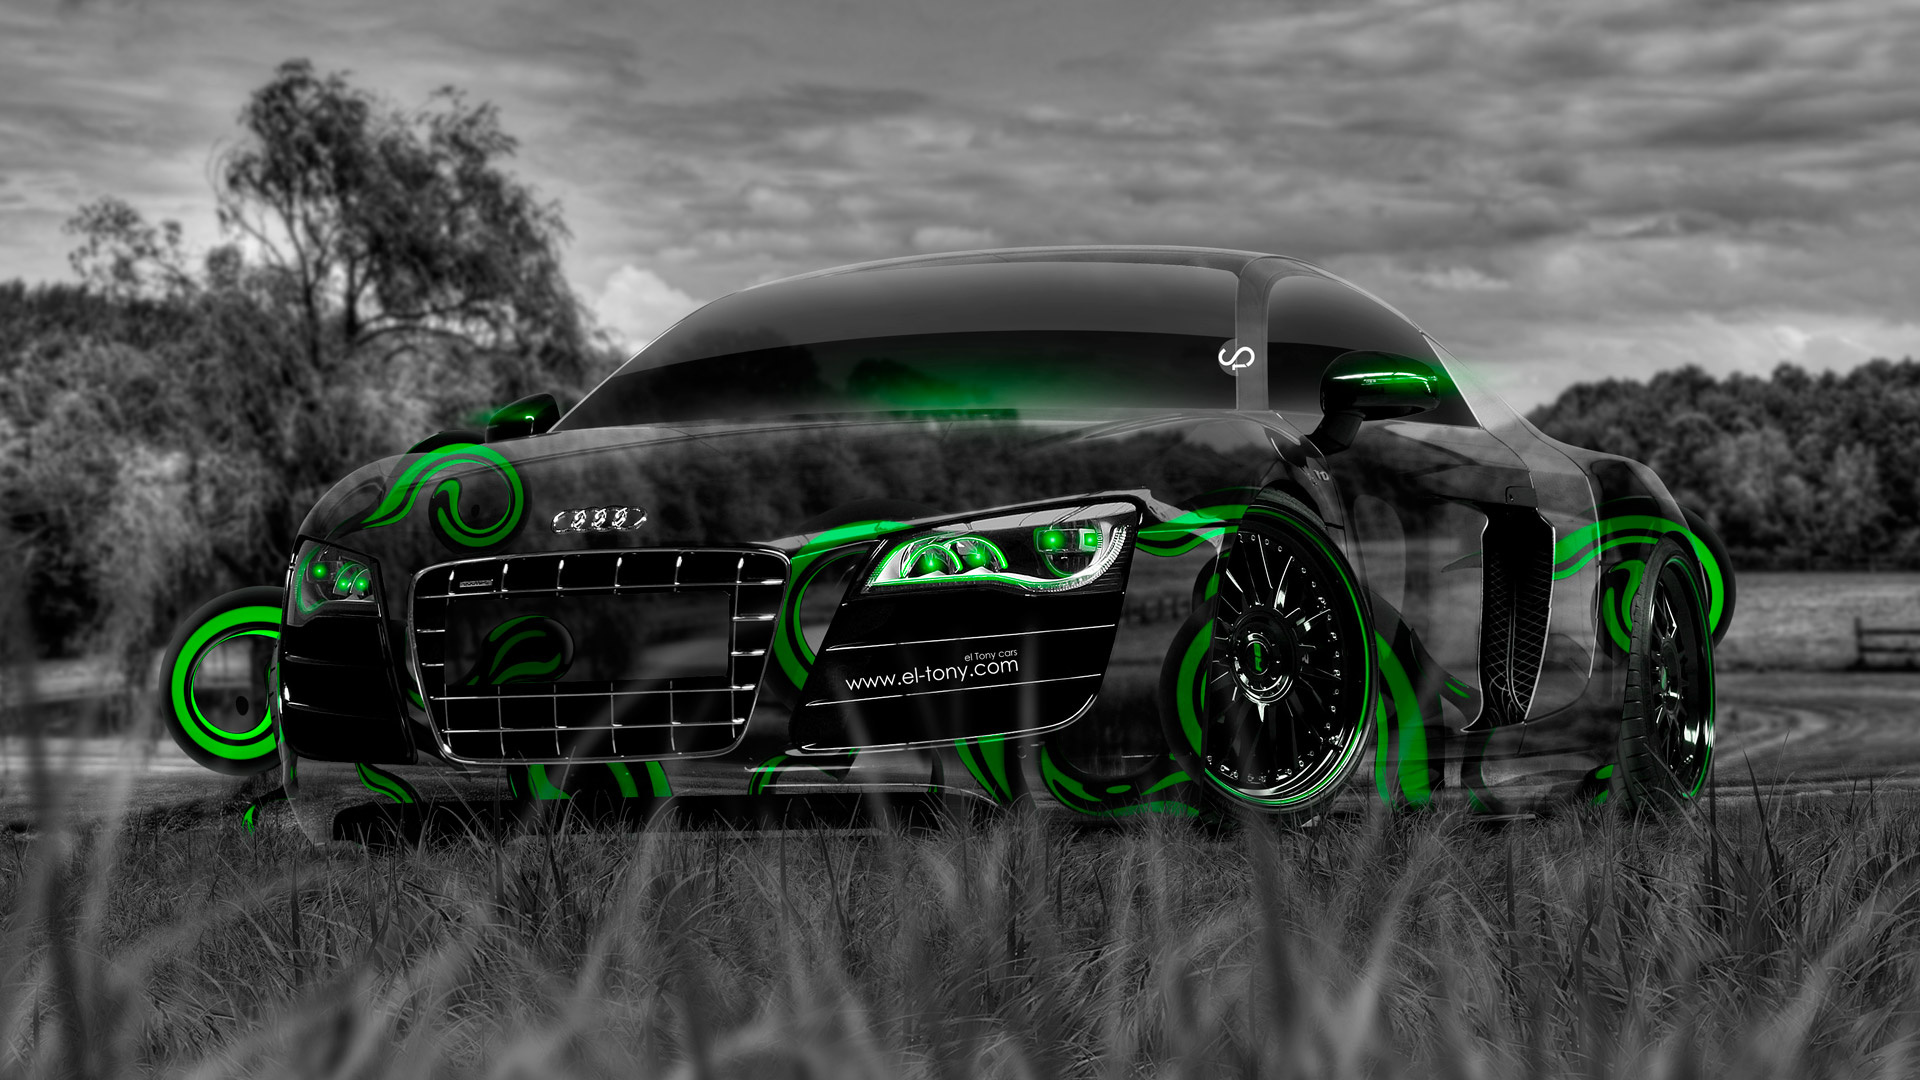 Audi R Crystal Nature Car Green Neon Effects Hd Wallpapers Design By Tony Kokhan   El Tony as well Hqdefault further Dr Dre Escalade Esv Custom in addition Cadillac Cts Pic X additionally Cadillacescaladeext. on cadillac escalade tuning